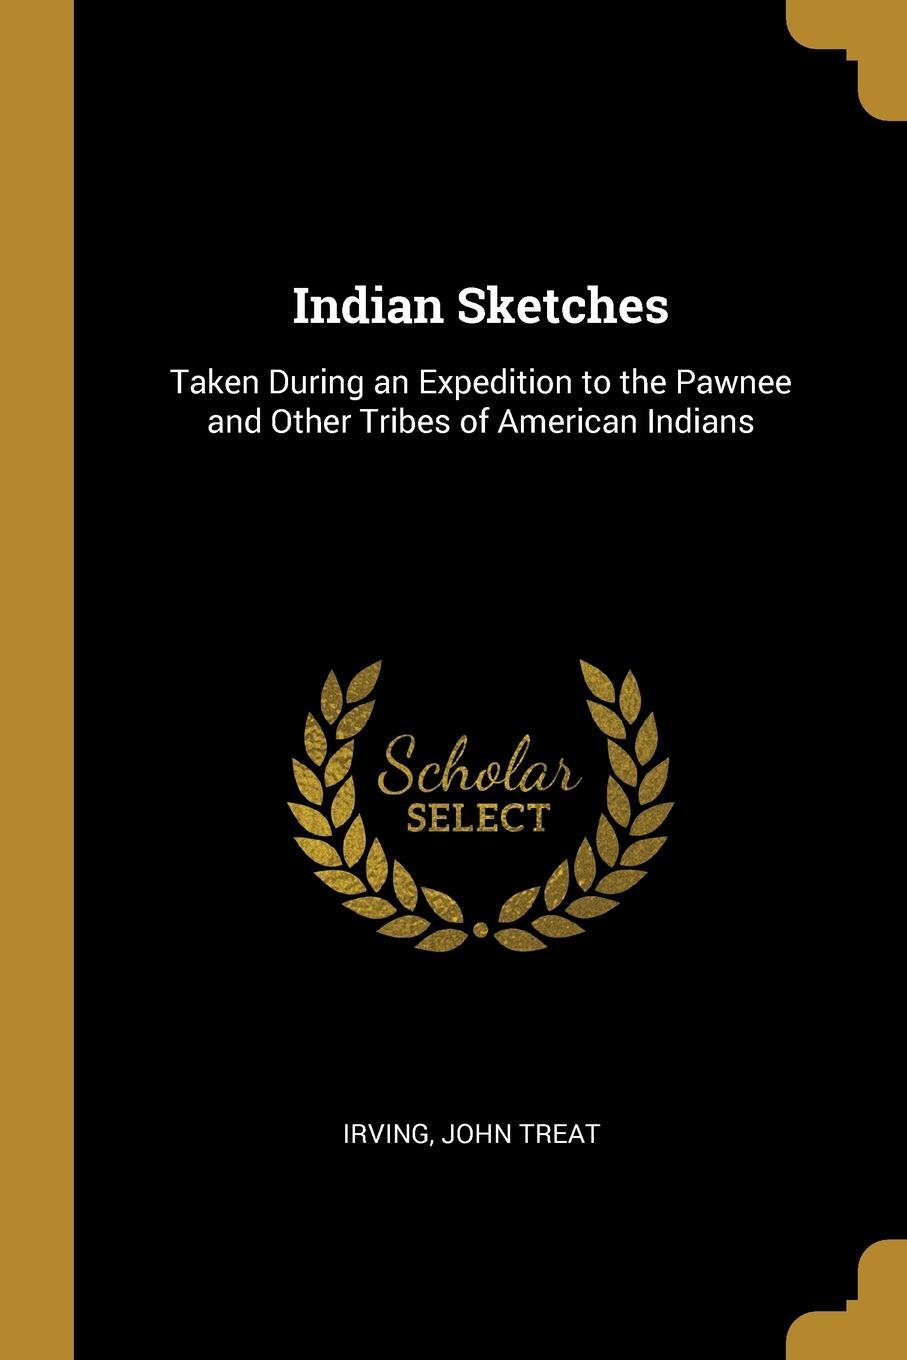 Indian Sketches. Taken During an Expedition to the Pawnee and Other Tribes of American Indians